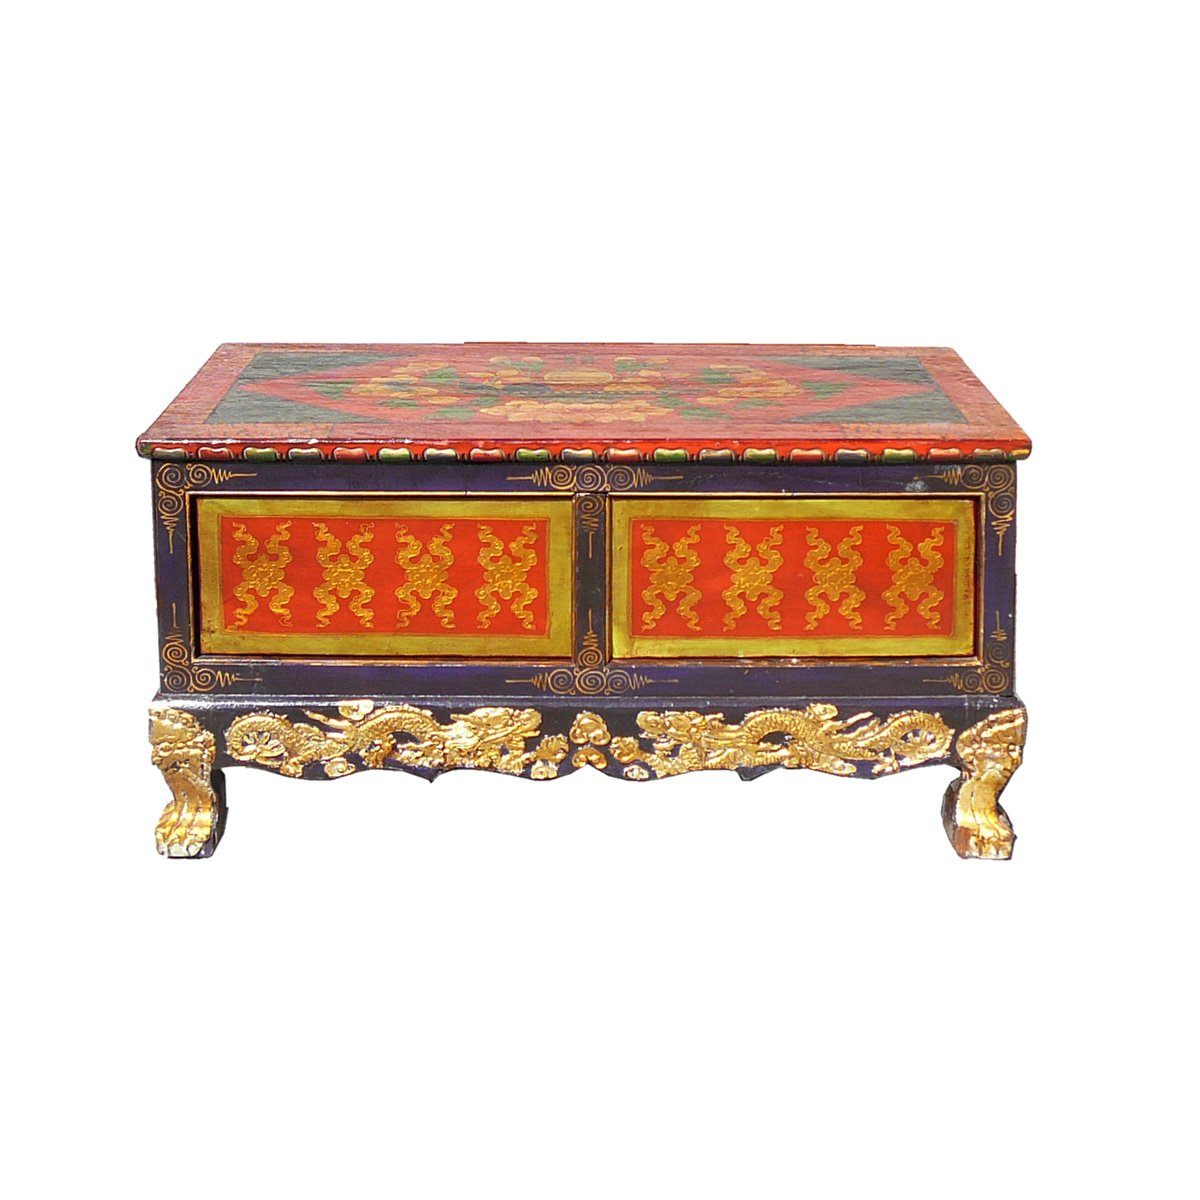 chinese tibetan golden craw legs low coffee table chairish drum accent pineapple umbrella stand small dining clear console barn wood furniture office side teak metal wine rack